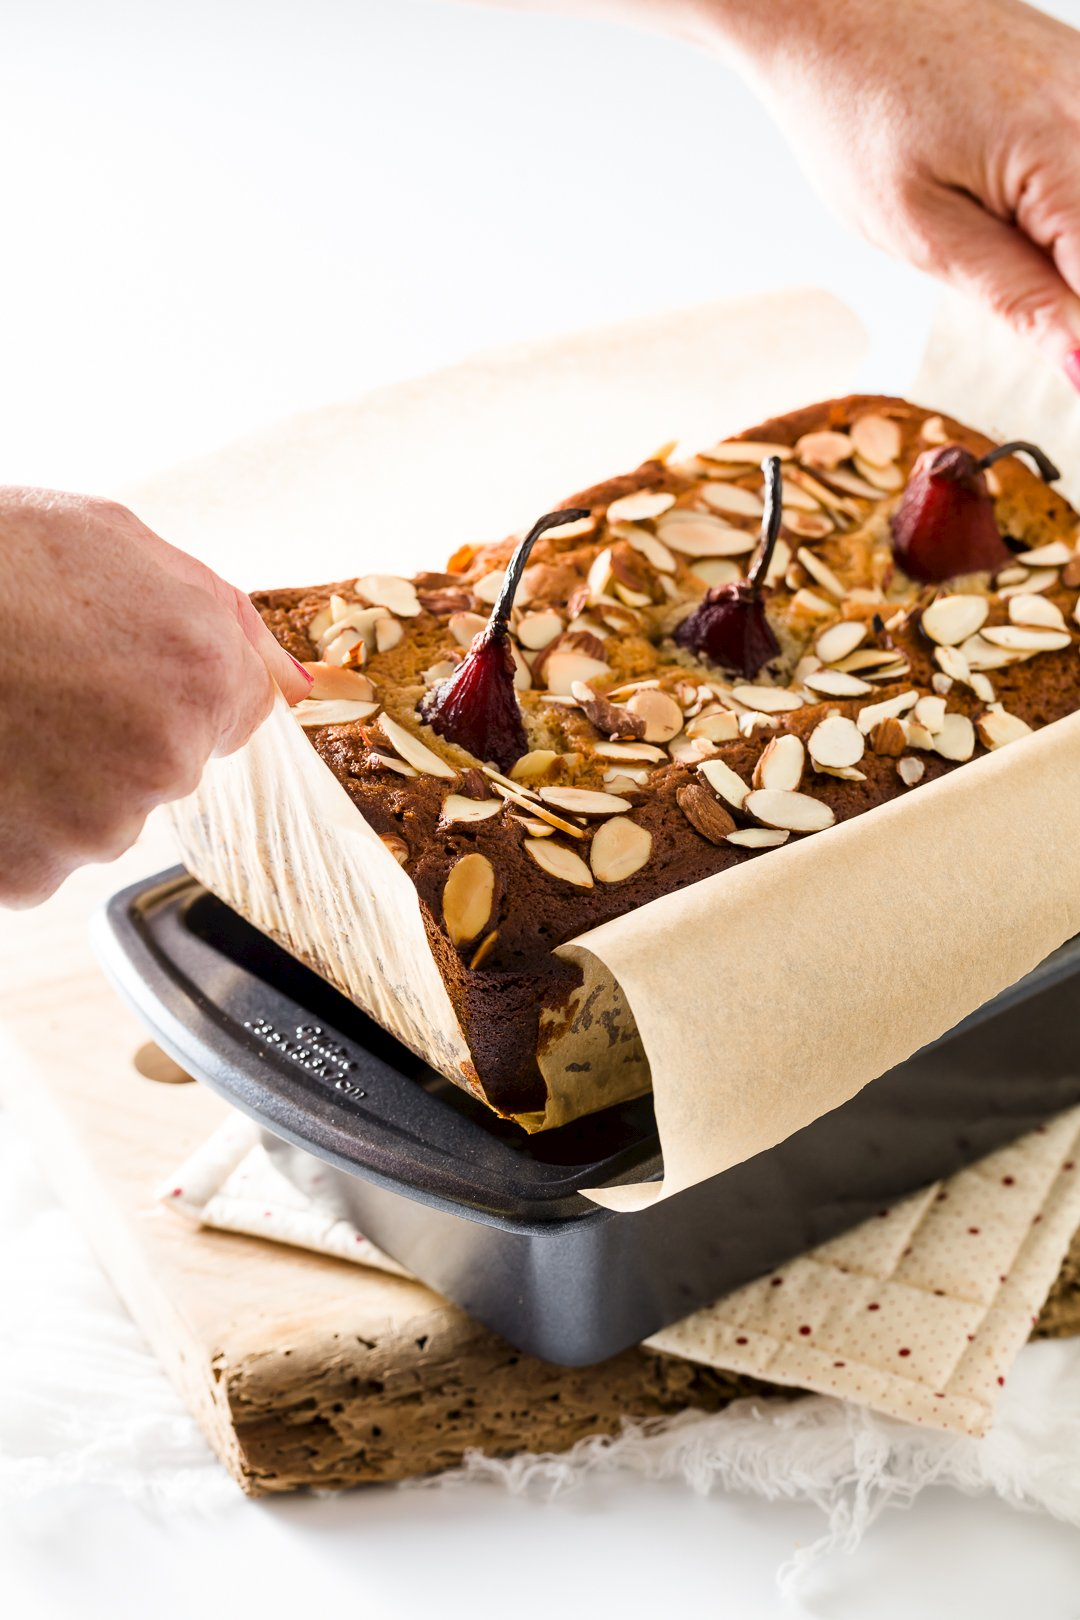 Removing cake from loaf pan